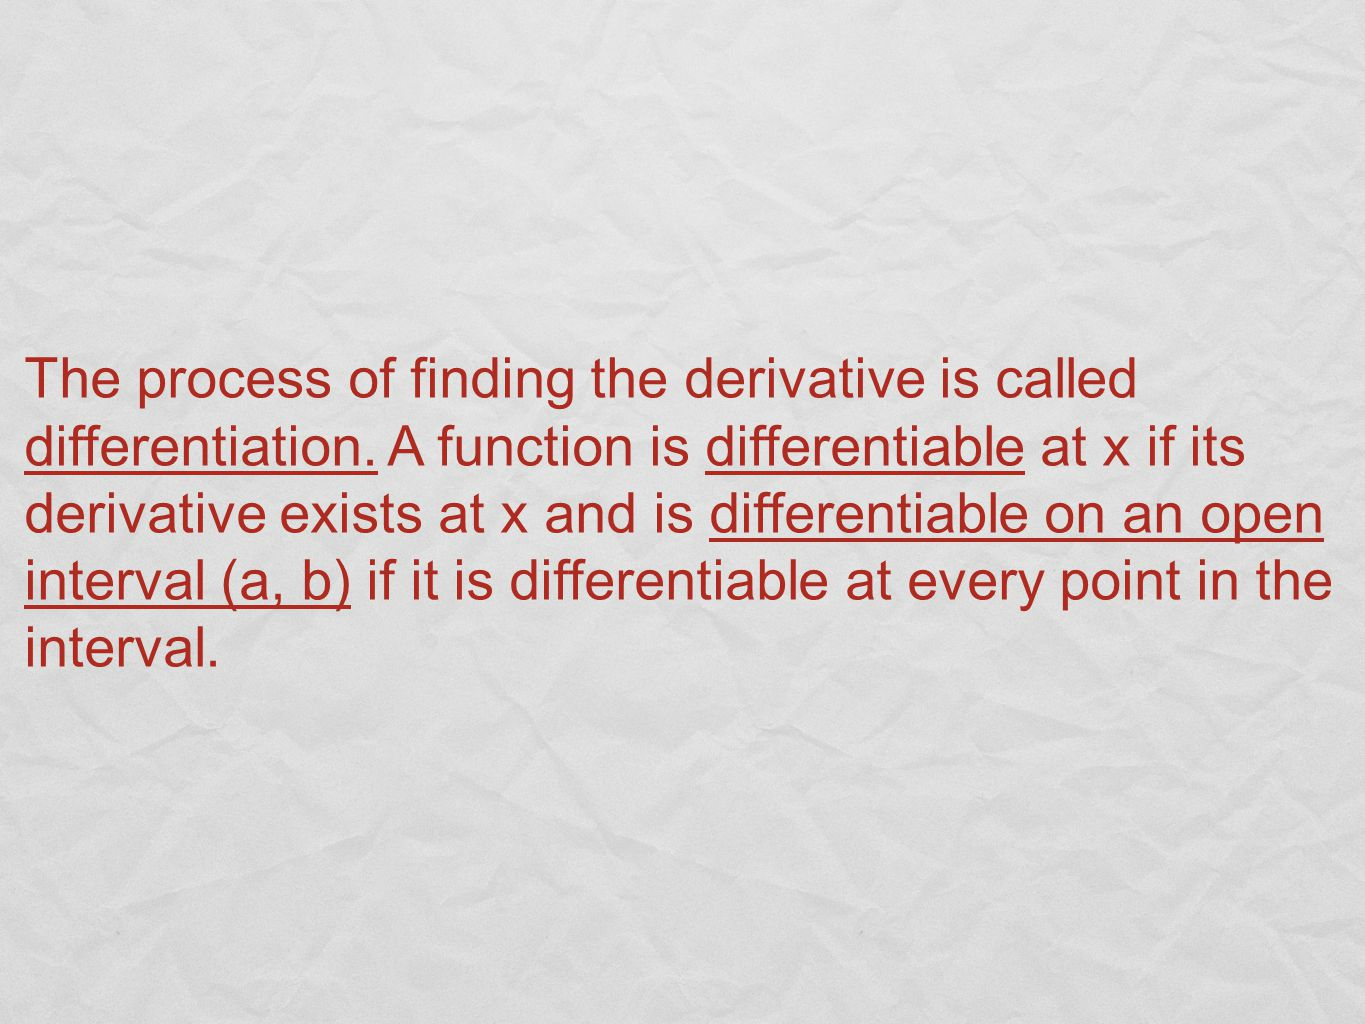 The process of finding the derivative is called differentiation.